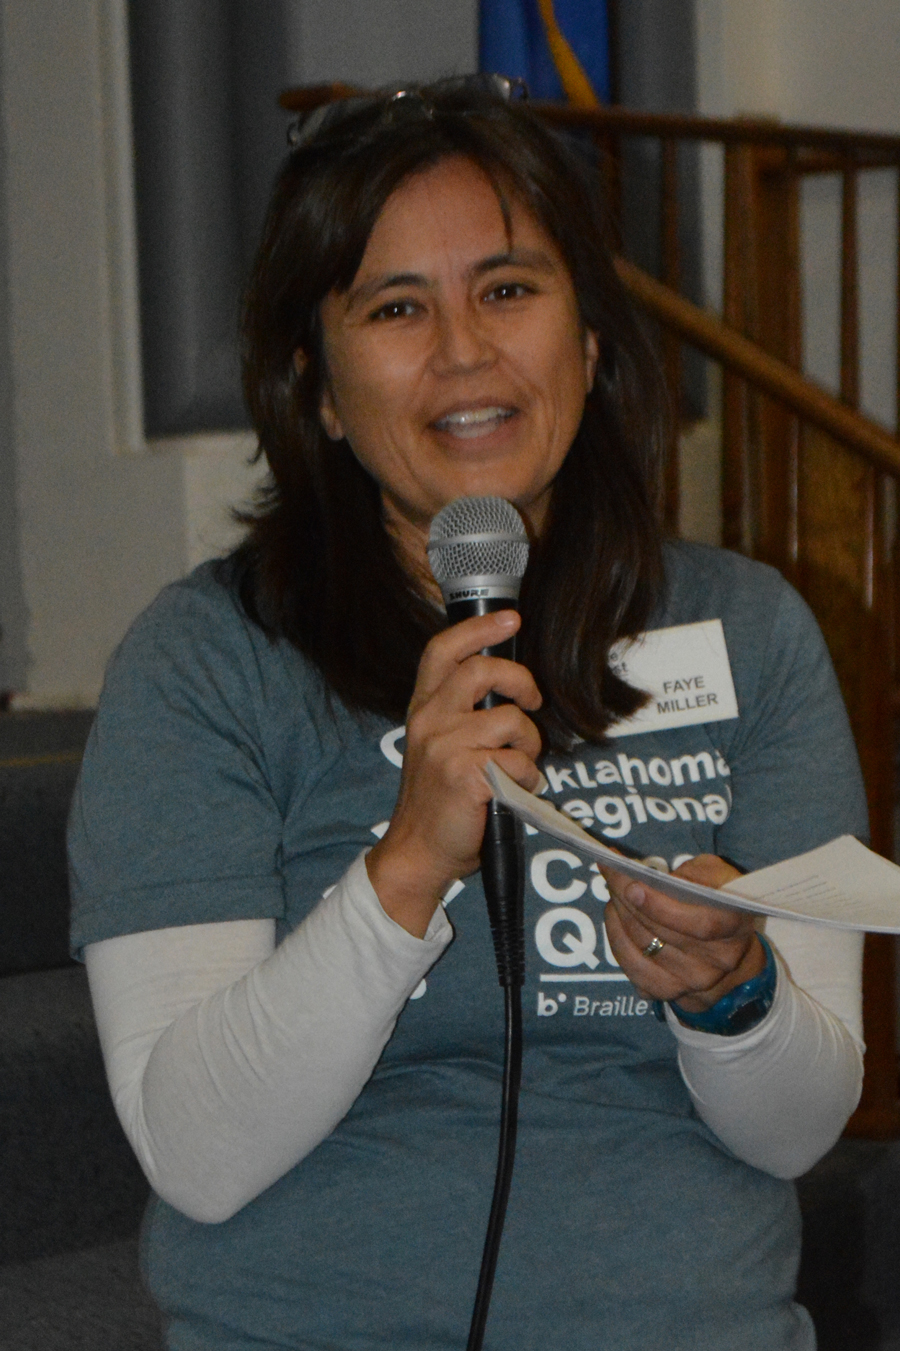 Smiling woman holds a microphone and papers